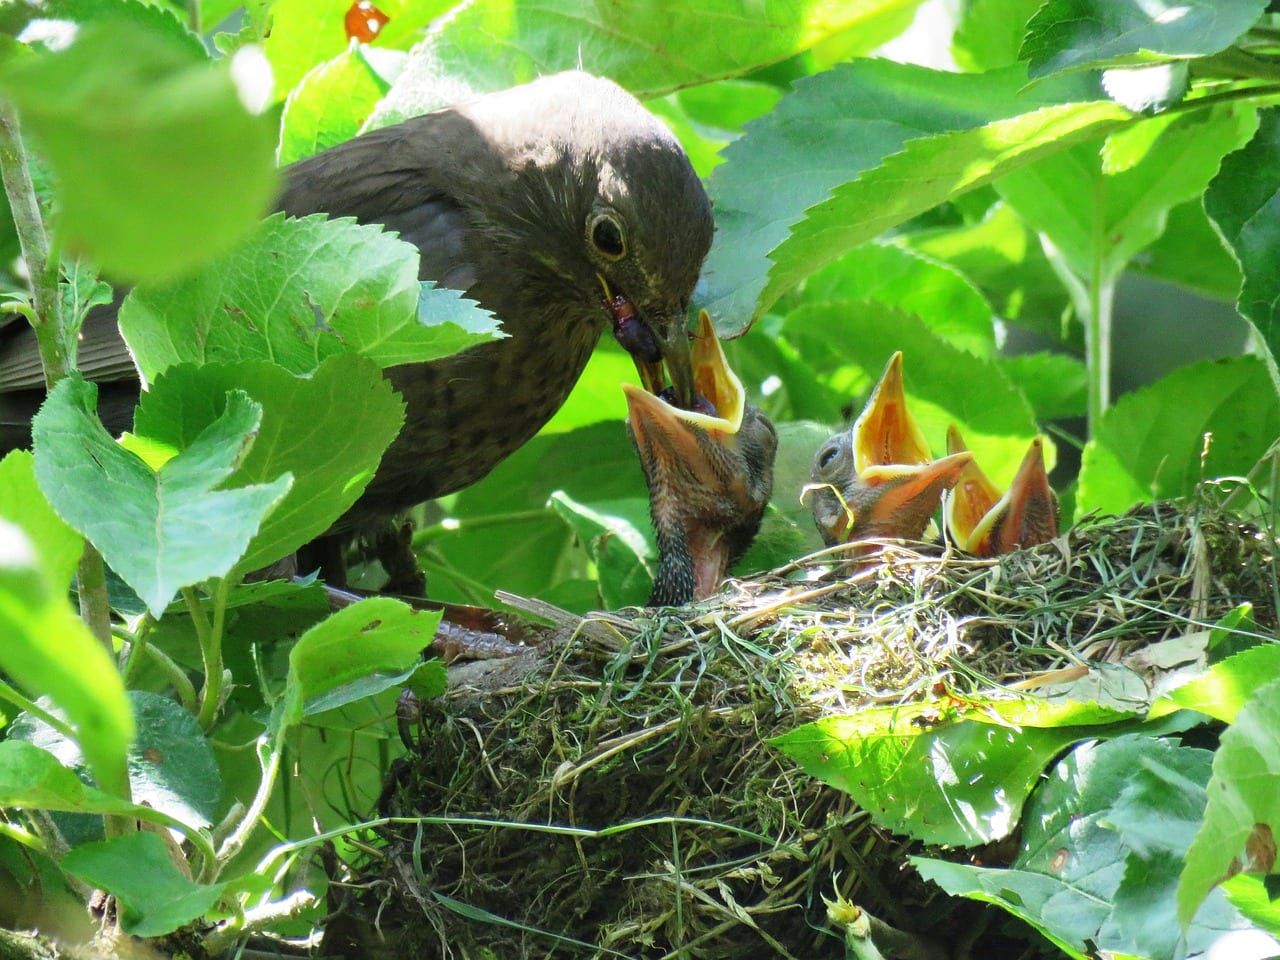 https://pixabay.com/en/blackbird-nest-young-birds-hungry-1507903/